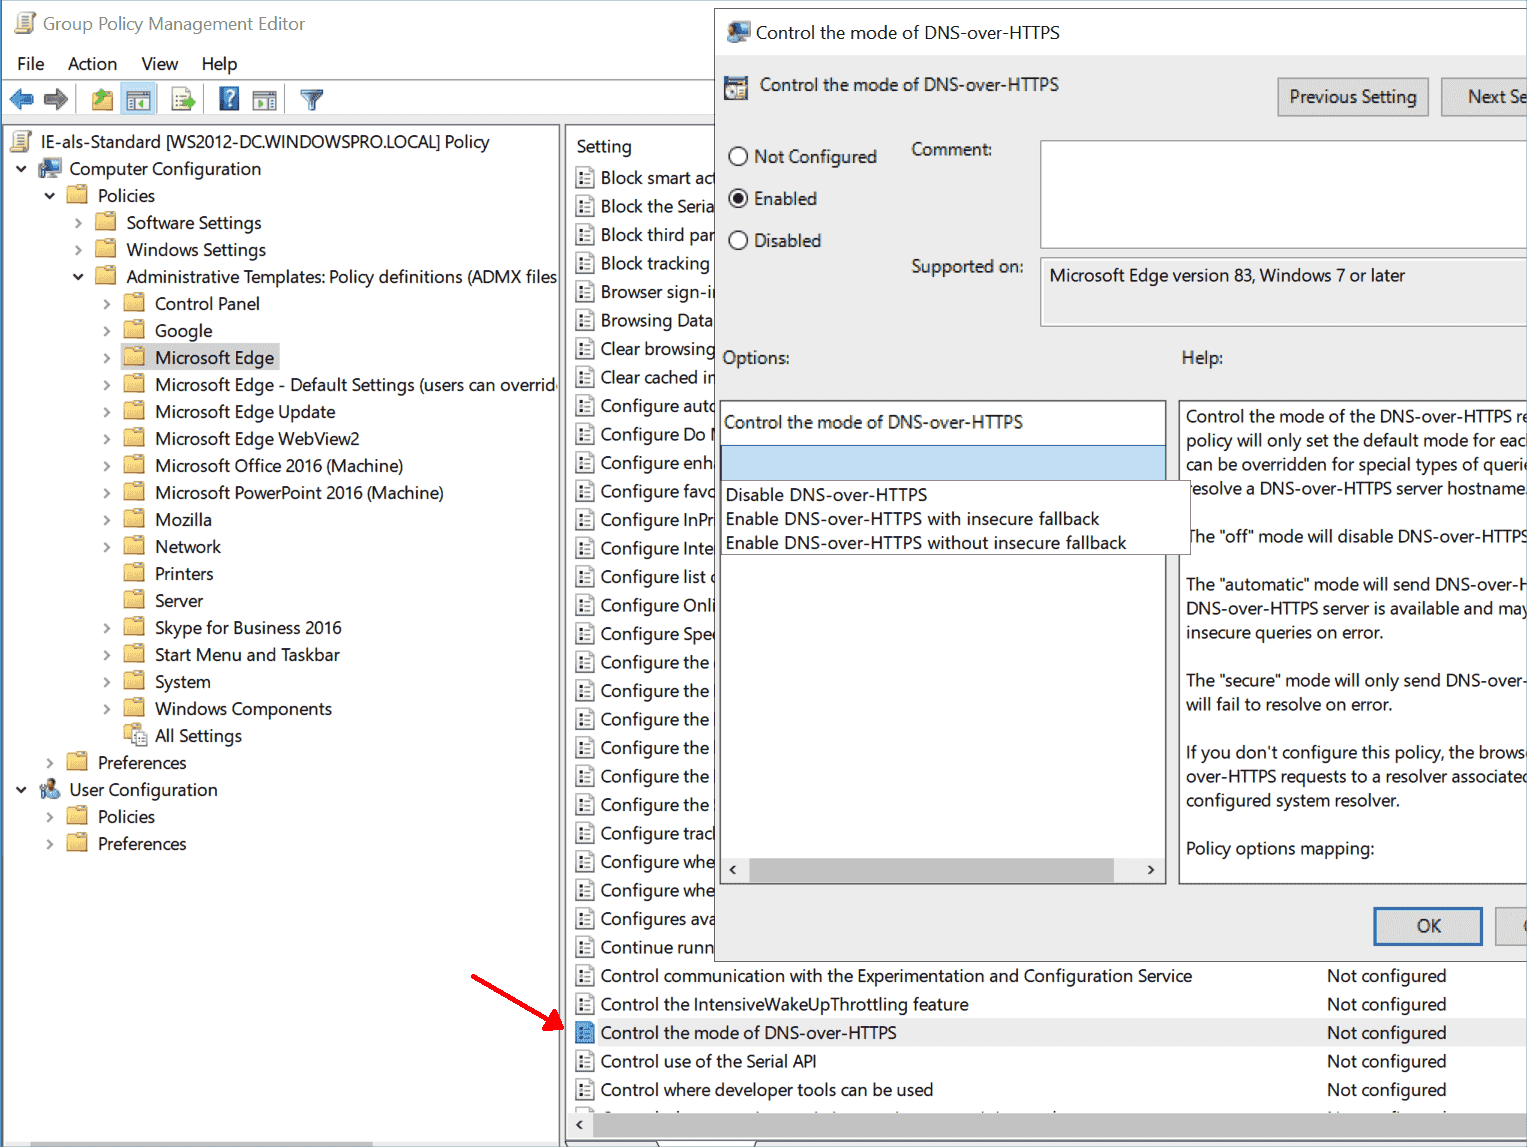 Configuring DNS over HTTPS for Microsoft Edge via Group Policy